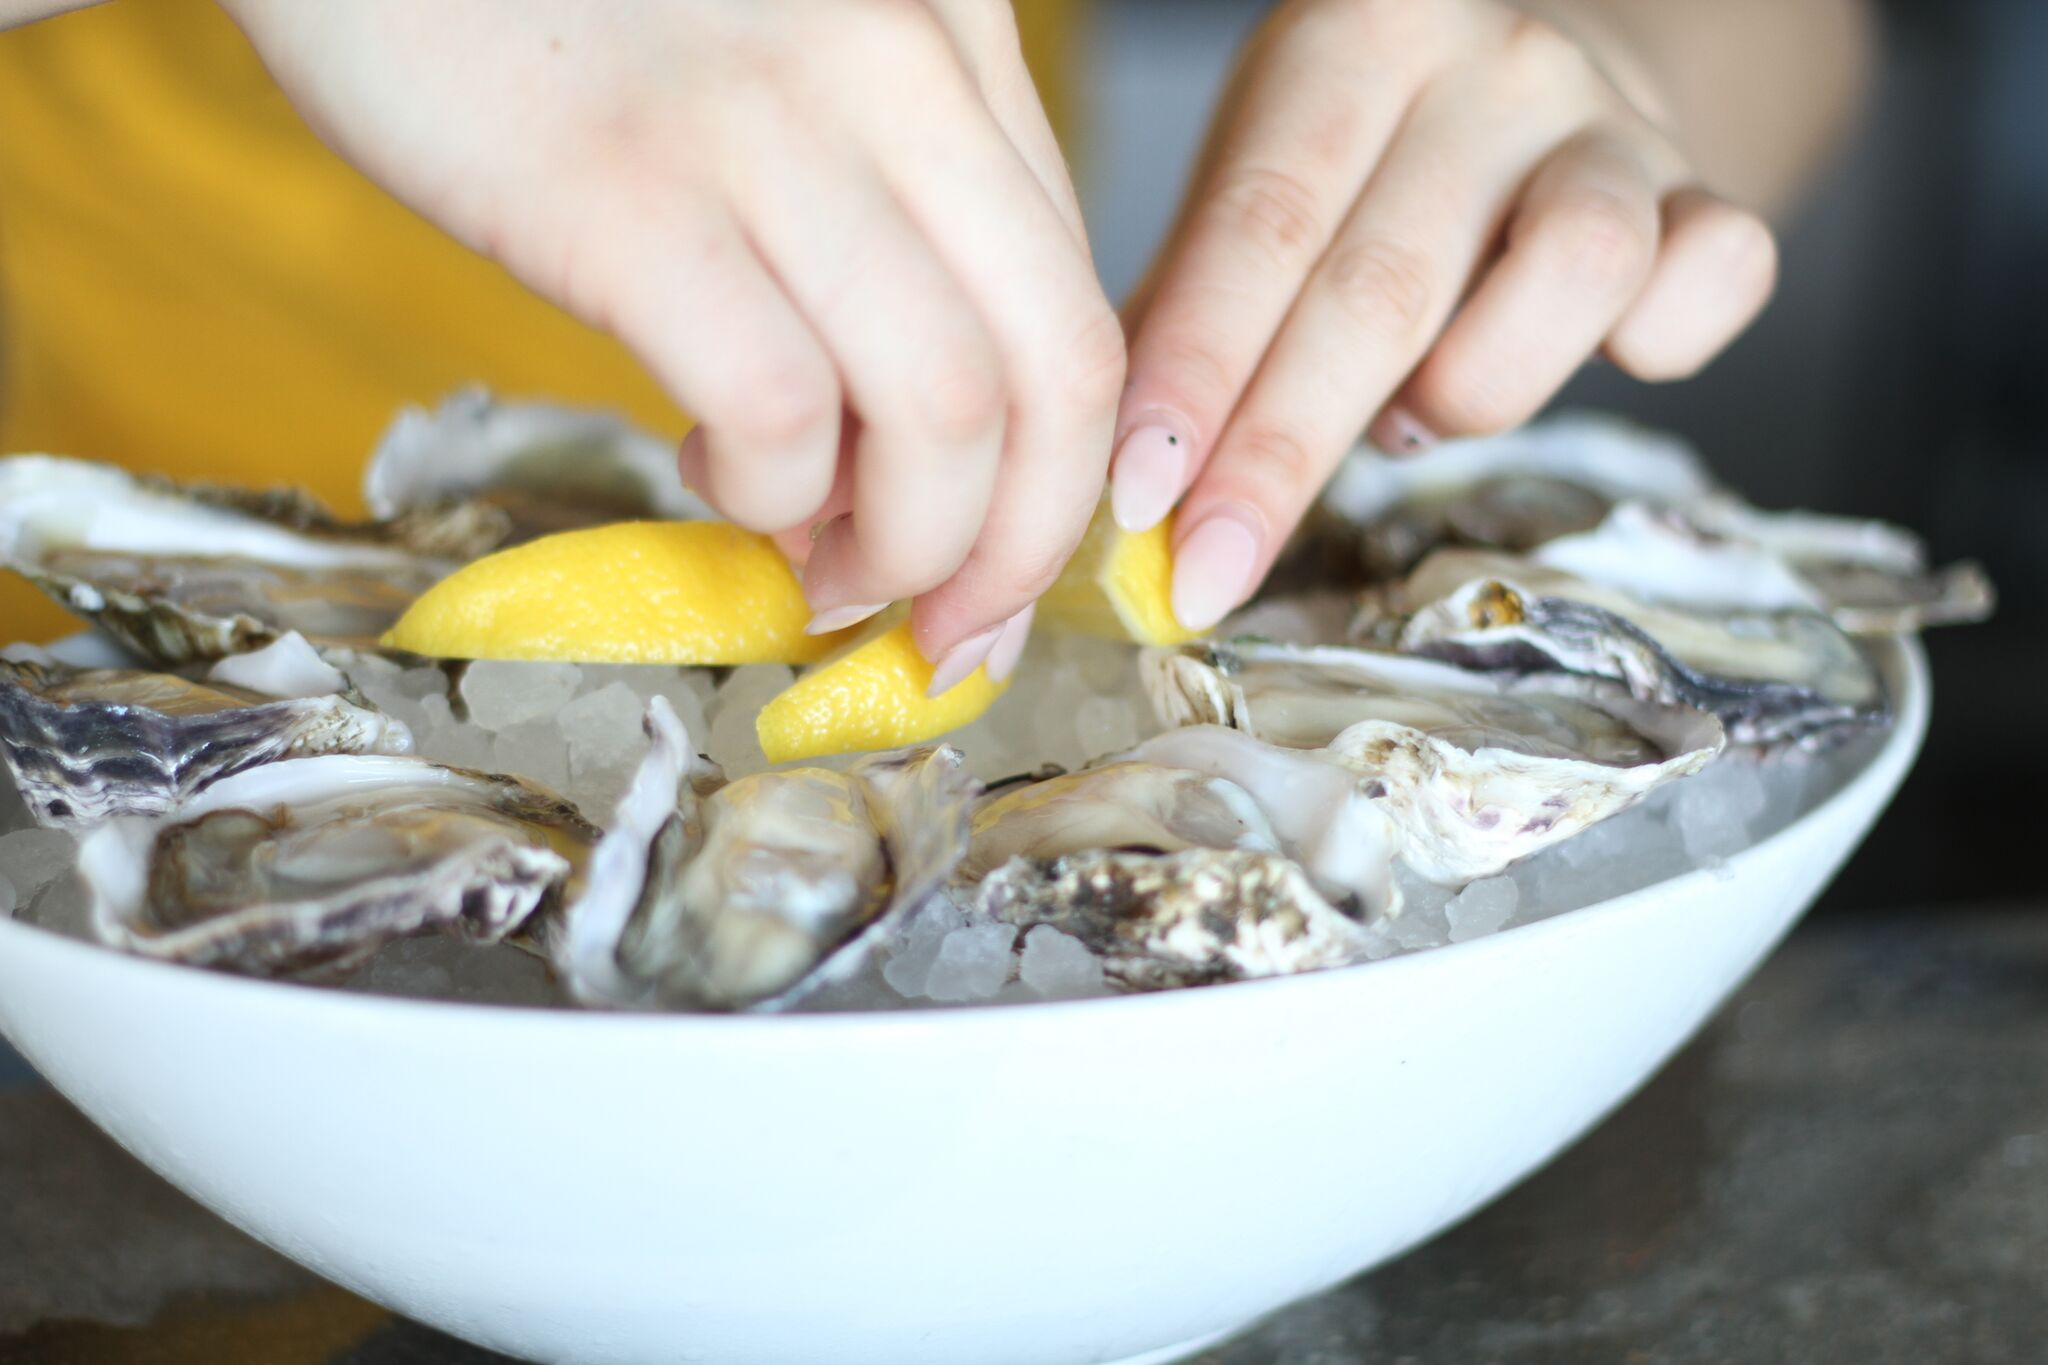 Oysters are packed with healthy minerals, served up daily at Shuck Oyster Bar in Costa Mesa